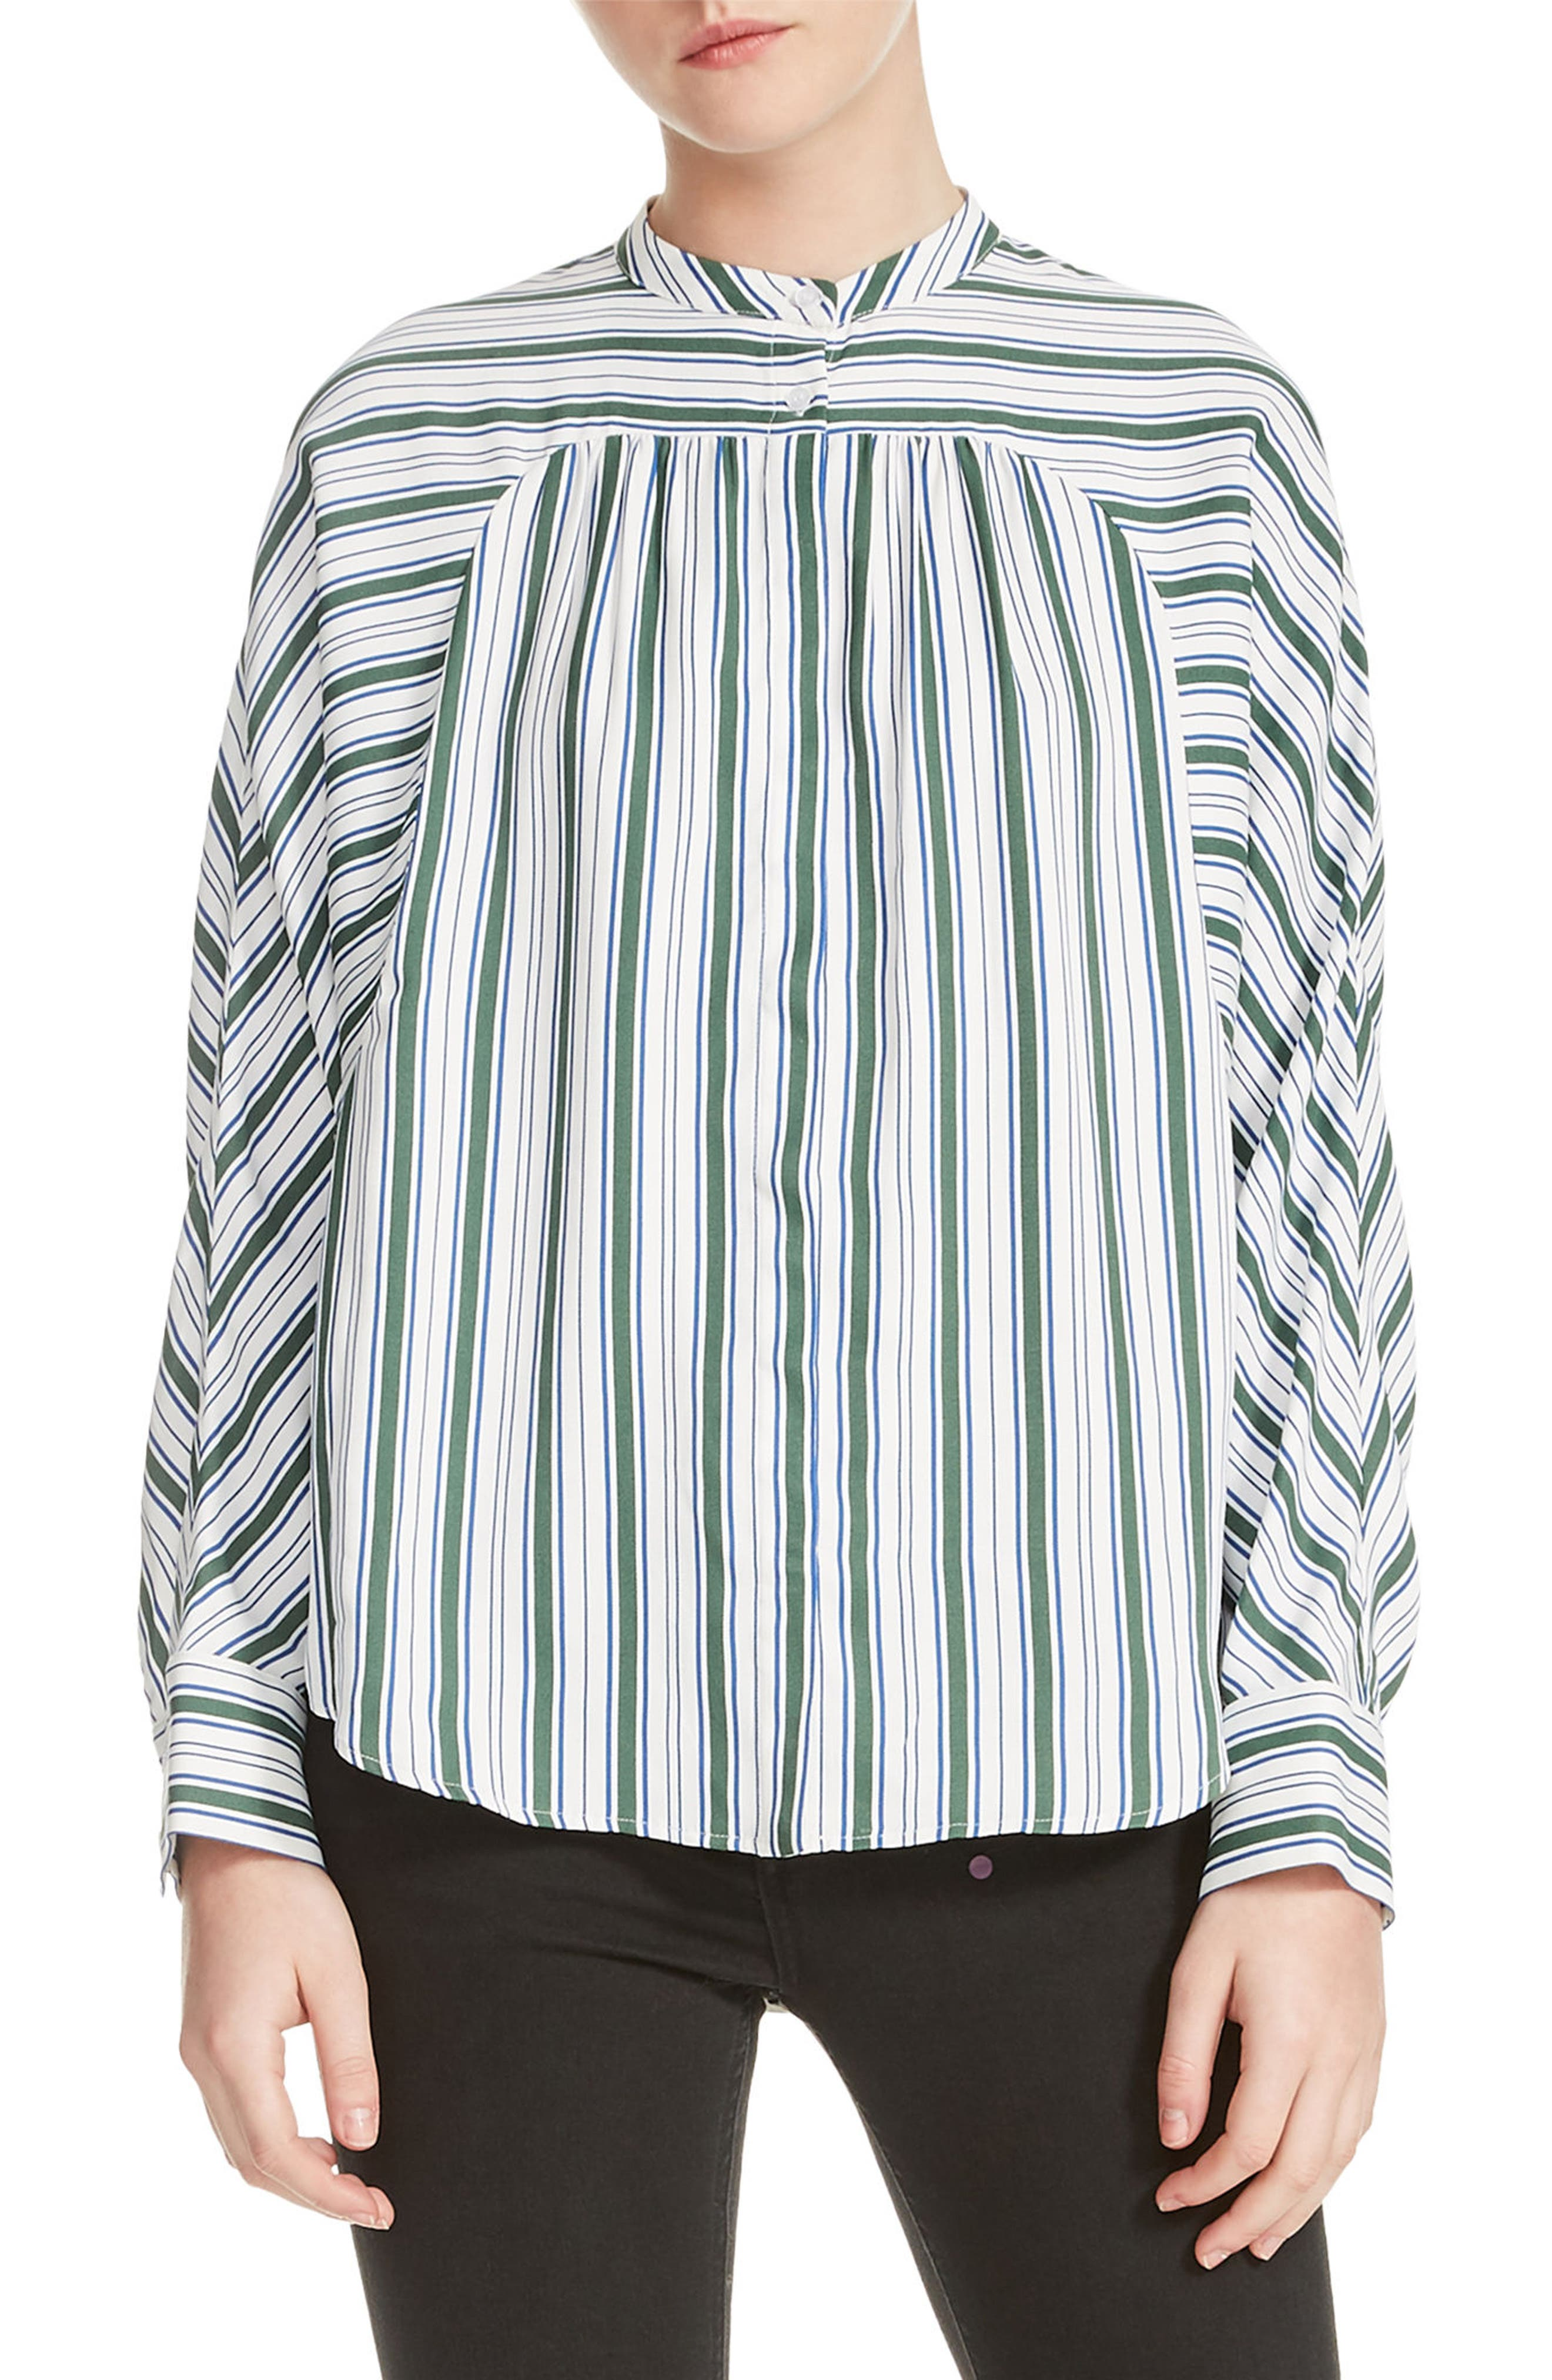 Coquille Stripe Blouse,                         Main,                         color, 400